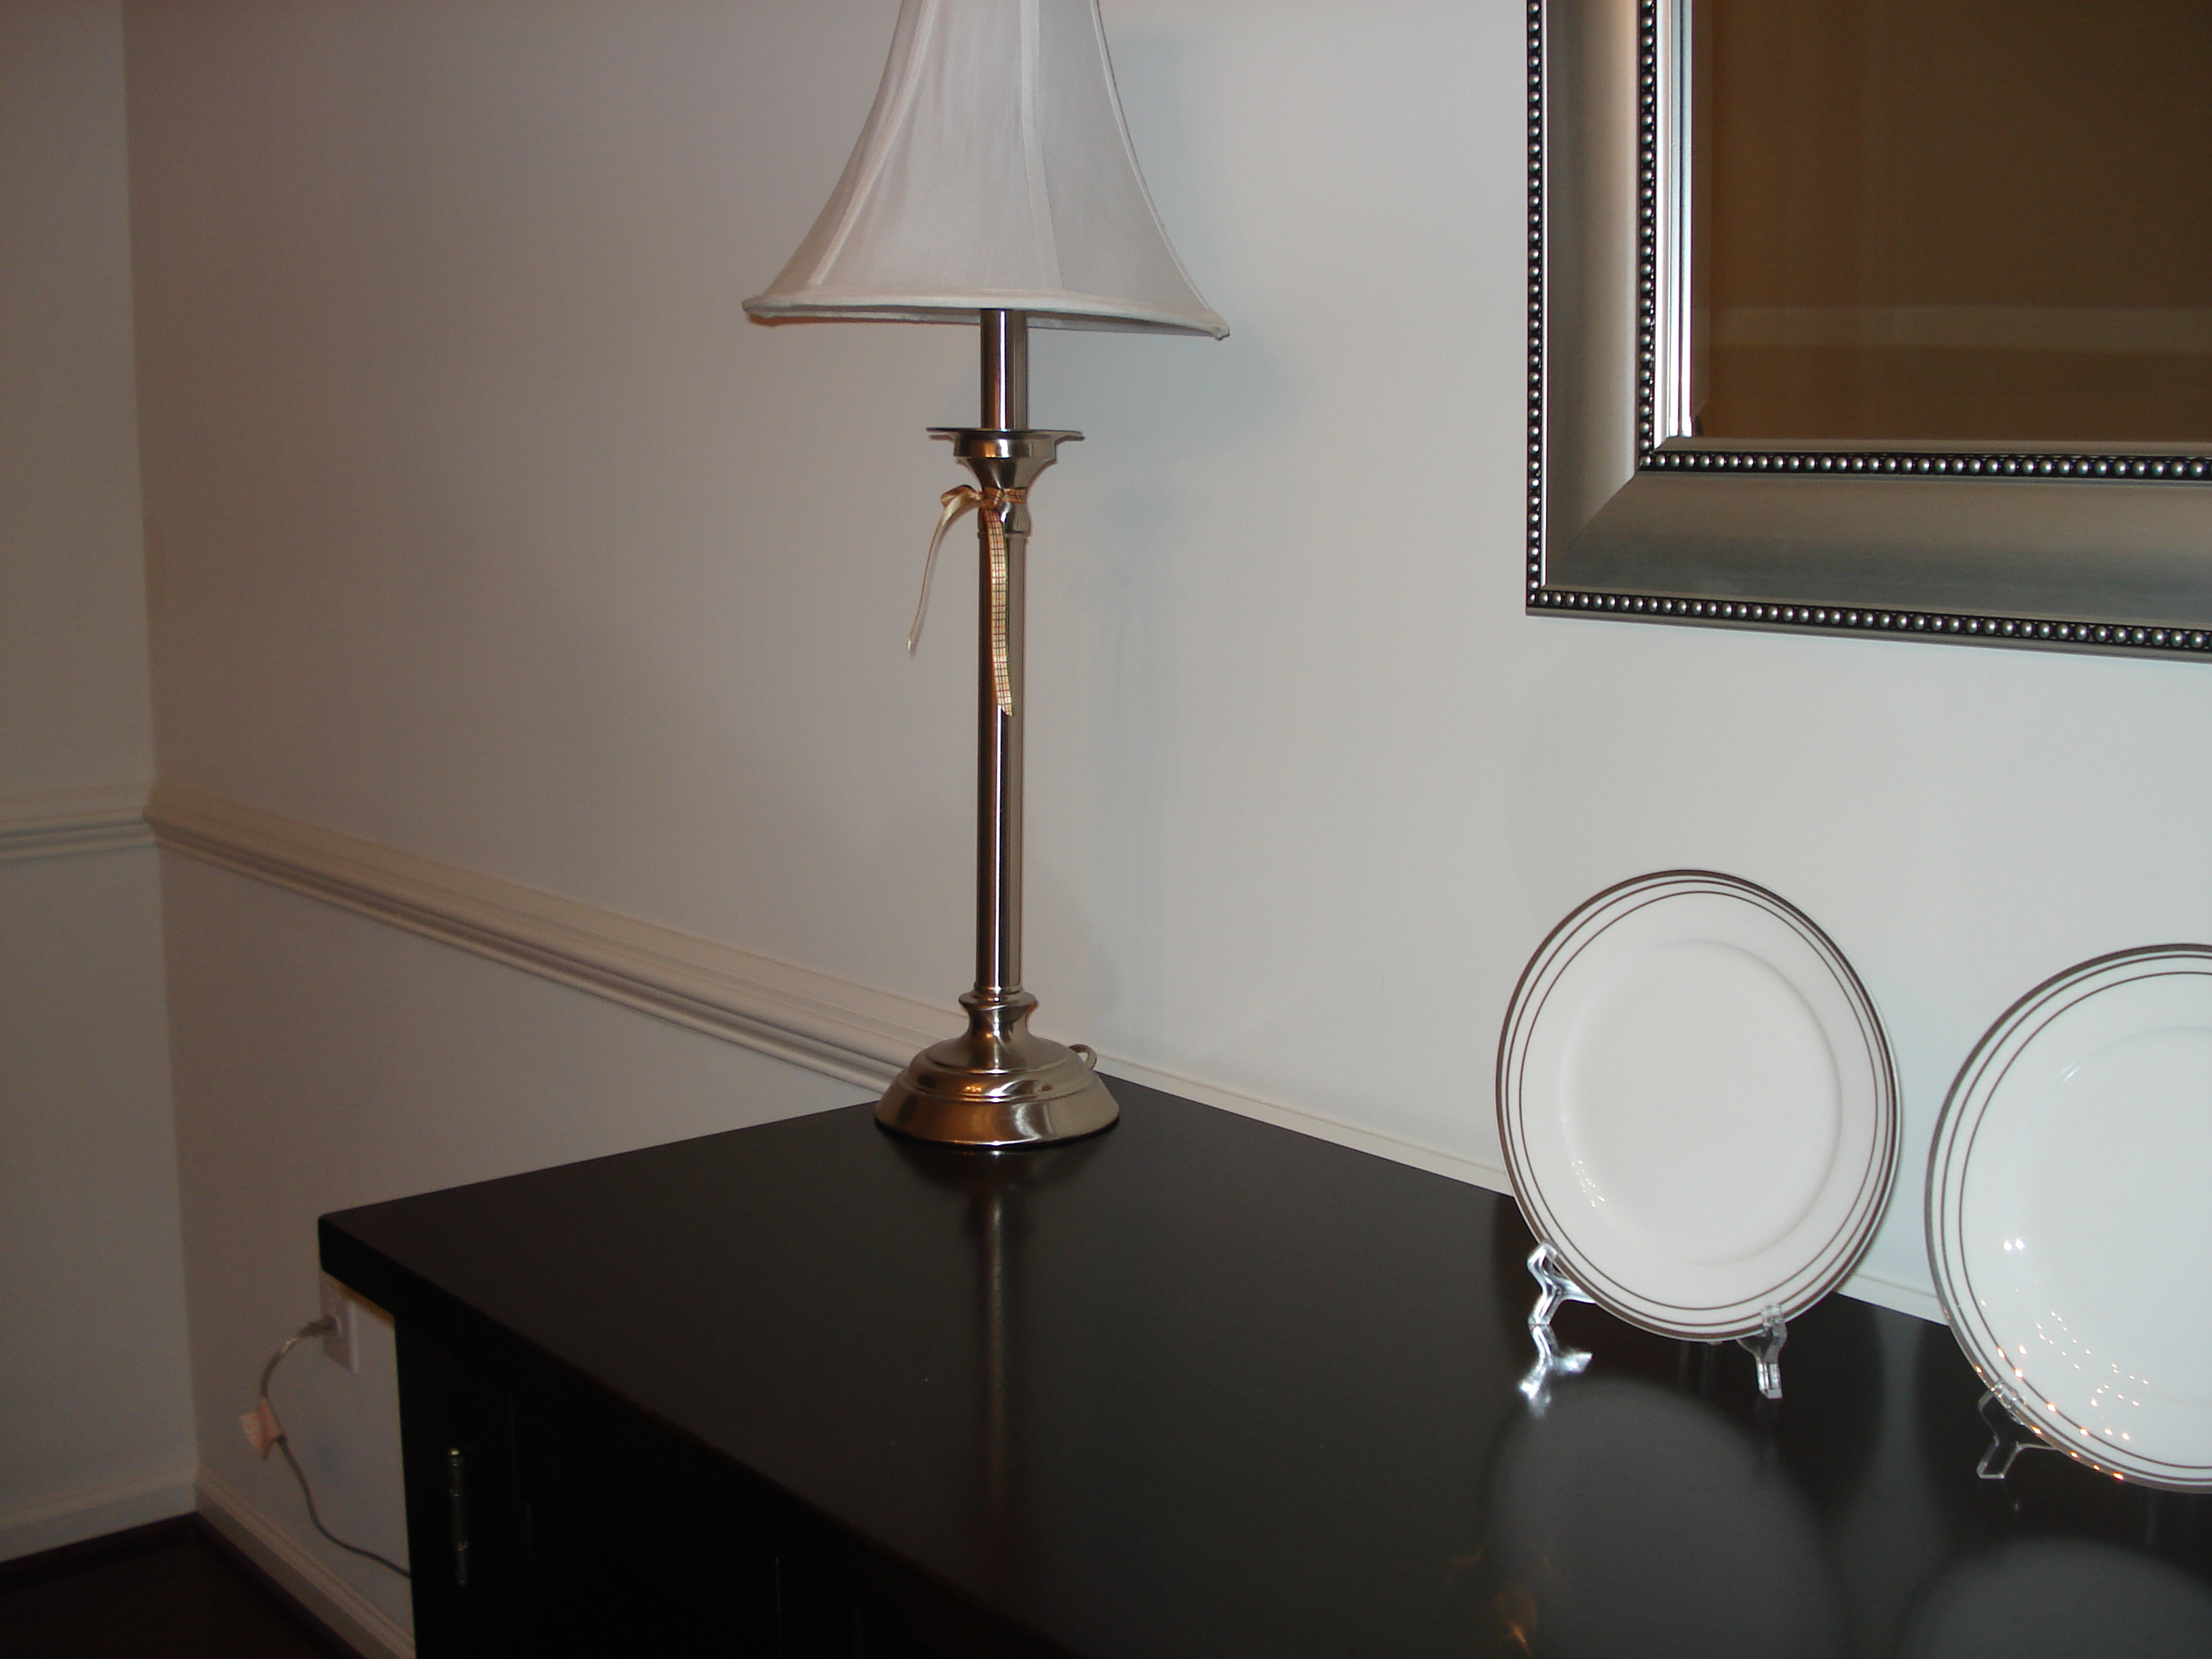 chair rail molding profiles leather covers for sale our home from scratch